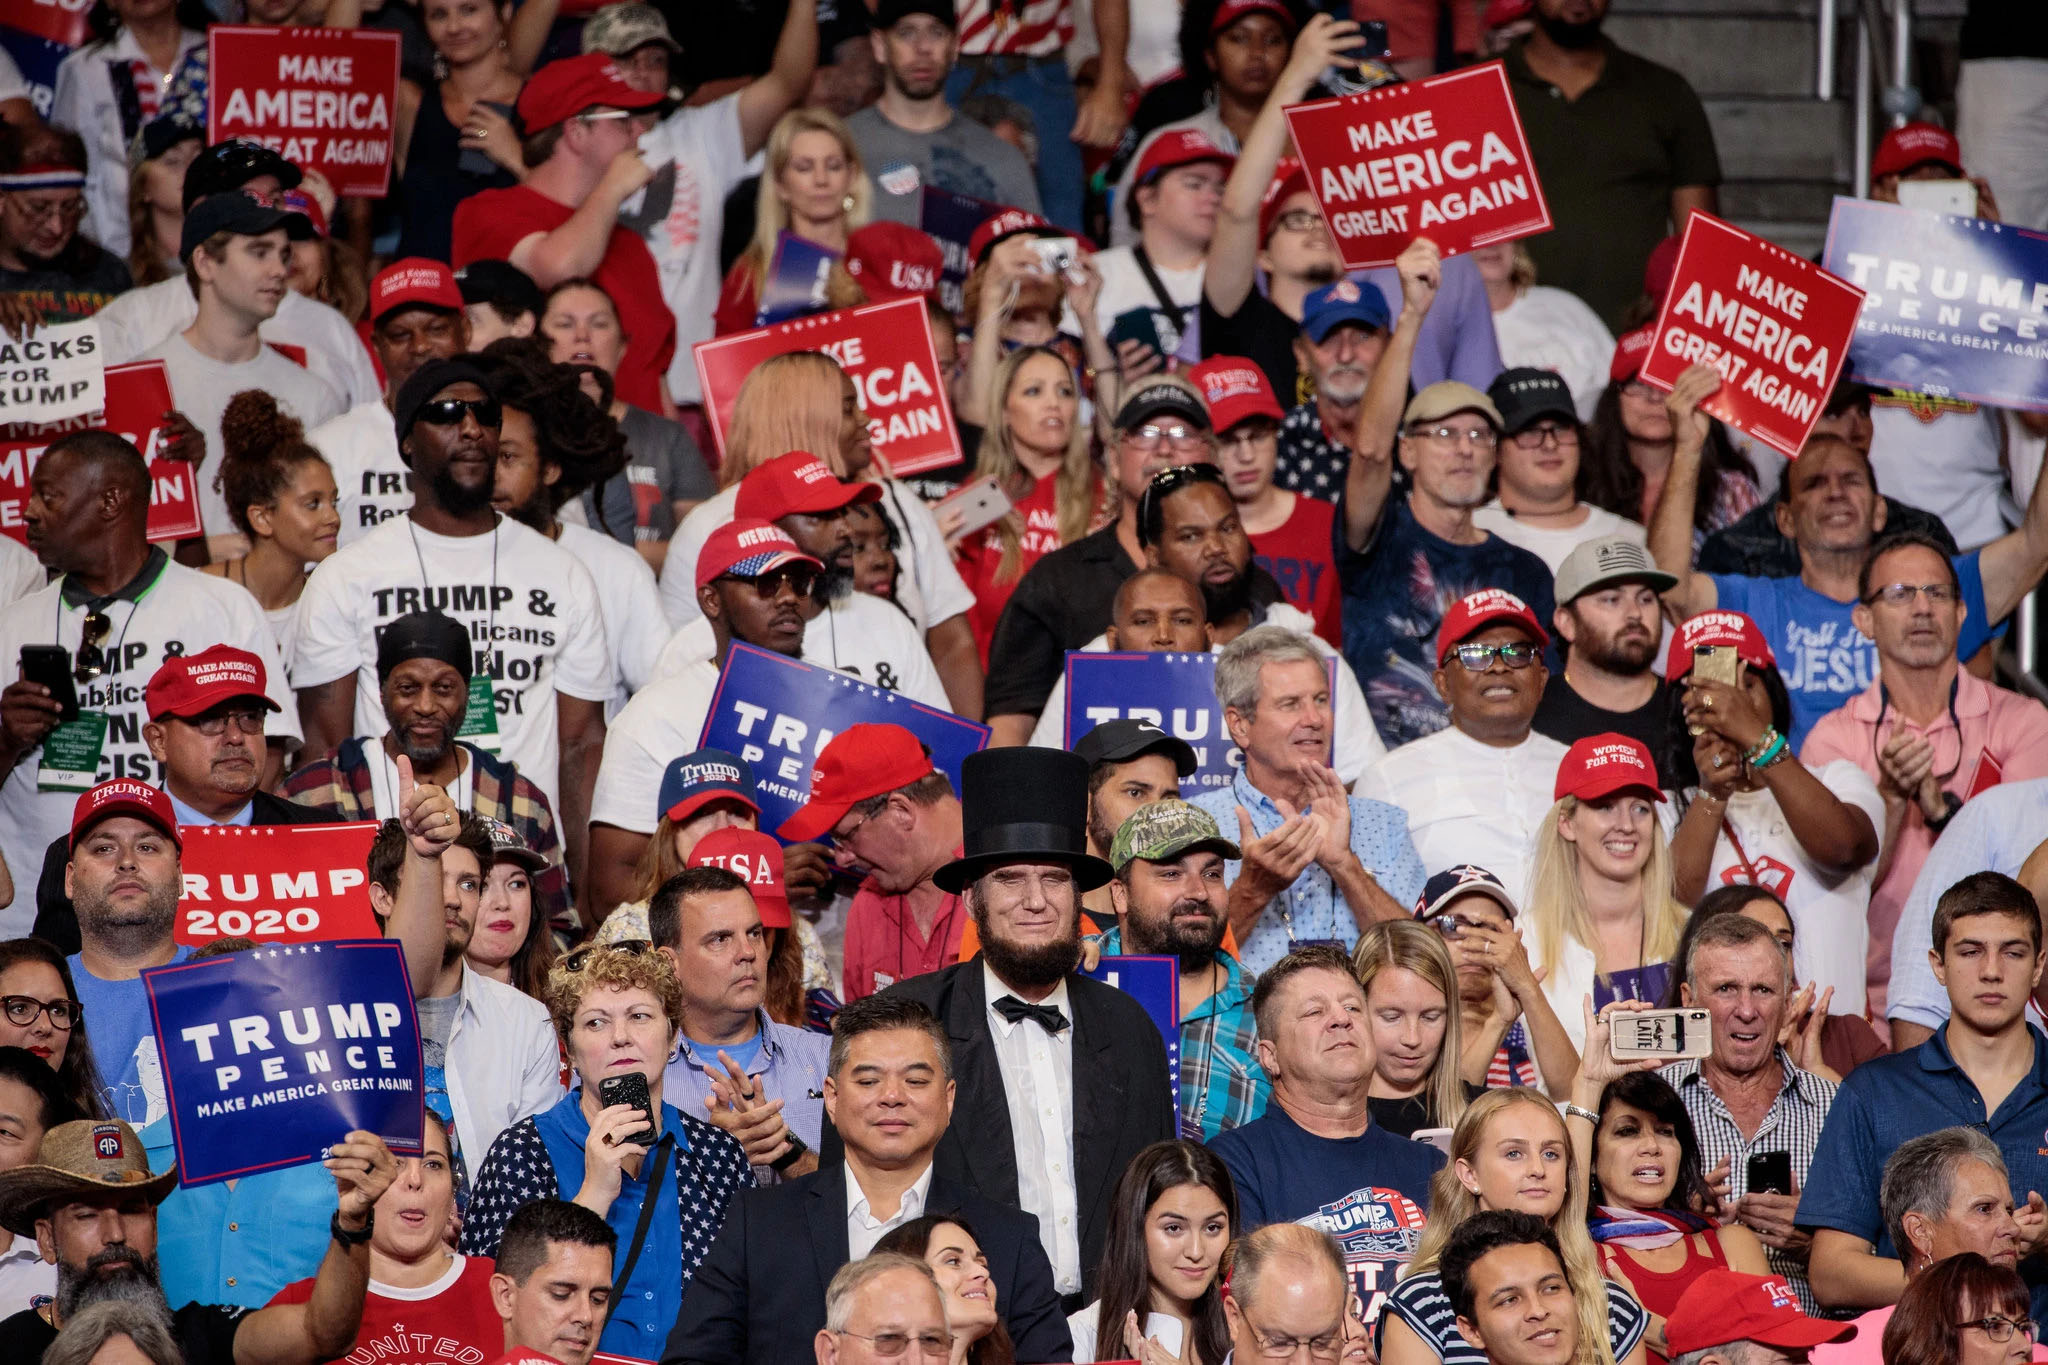 PHOTO CREDIT: A Lincoln impersonator in the crowd at a Trump re-election rally in Orlando, Fla., in June. Damon Winter/The New York Times